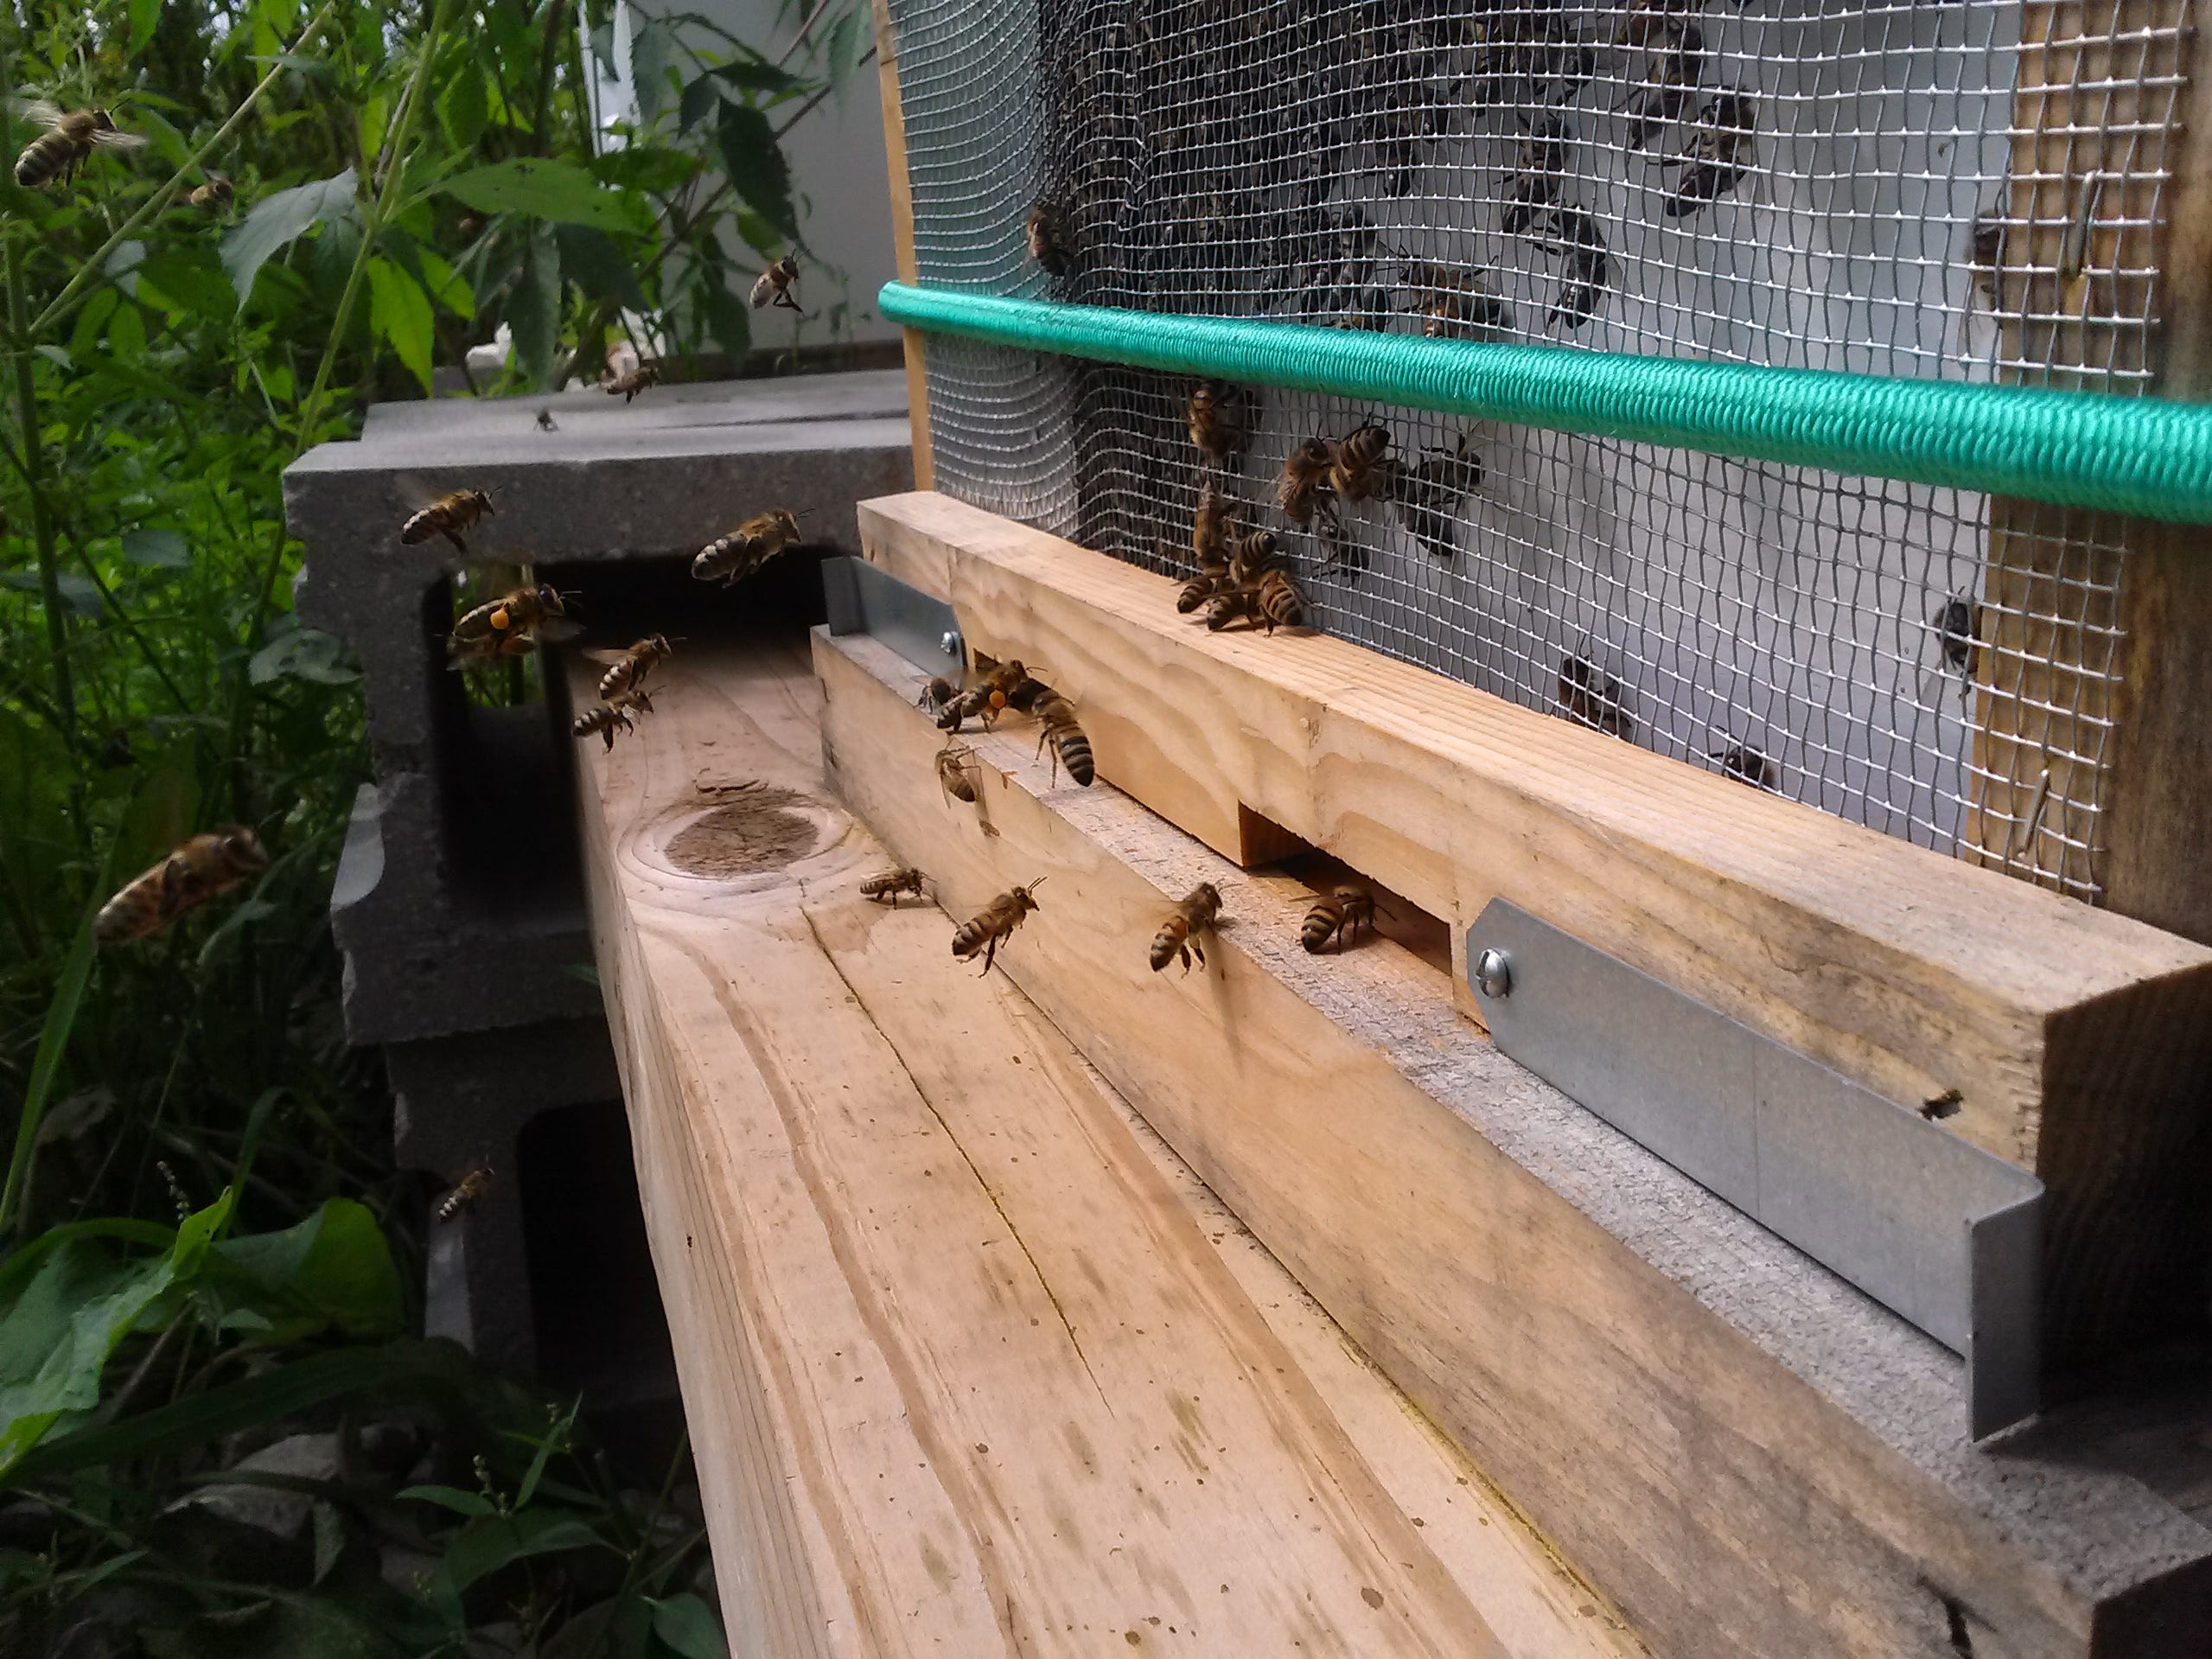 """This is a closeup of Hive 1 a couple of days after """"robber bees"""" arrived to steal honey, slaughtering many of the hive's bees in the process. This shows the robber screen the beekeeper put on during the carnage. The foragers learn how to get in and out of the hive, but the robbers can't."""